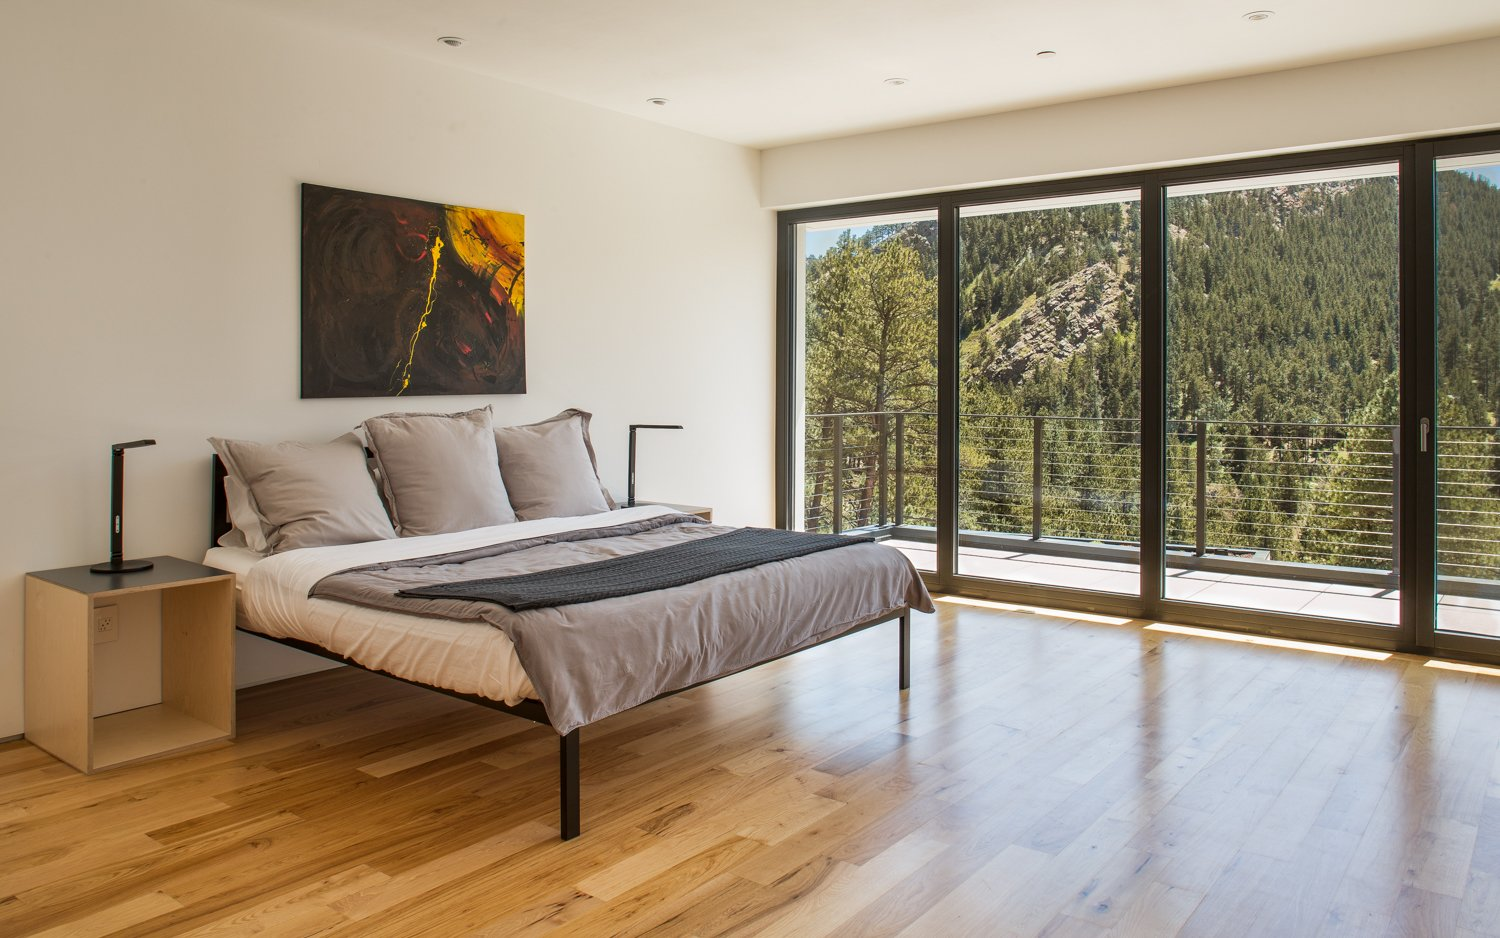 Bedroom, Bed, Ceiling Lighting, Medium Hardwood Floor, and Night Stands Main House Master Bedroom with a View  Best Photos from The Tesla of Boulder Homes Offered at $5,200,000